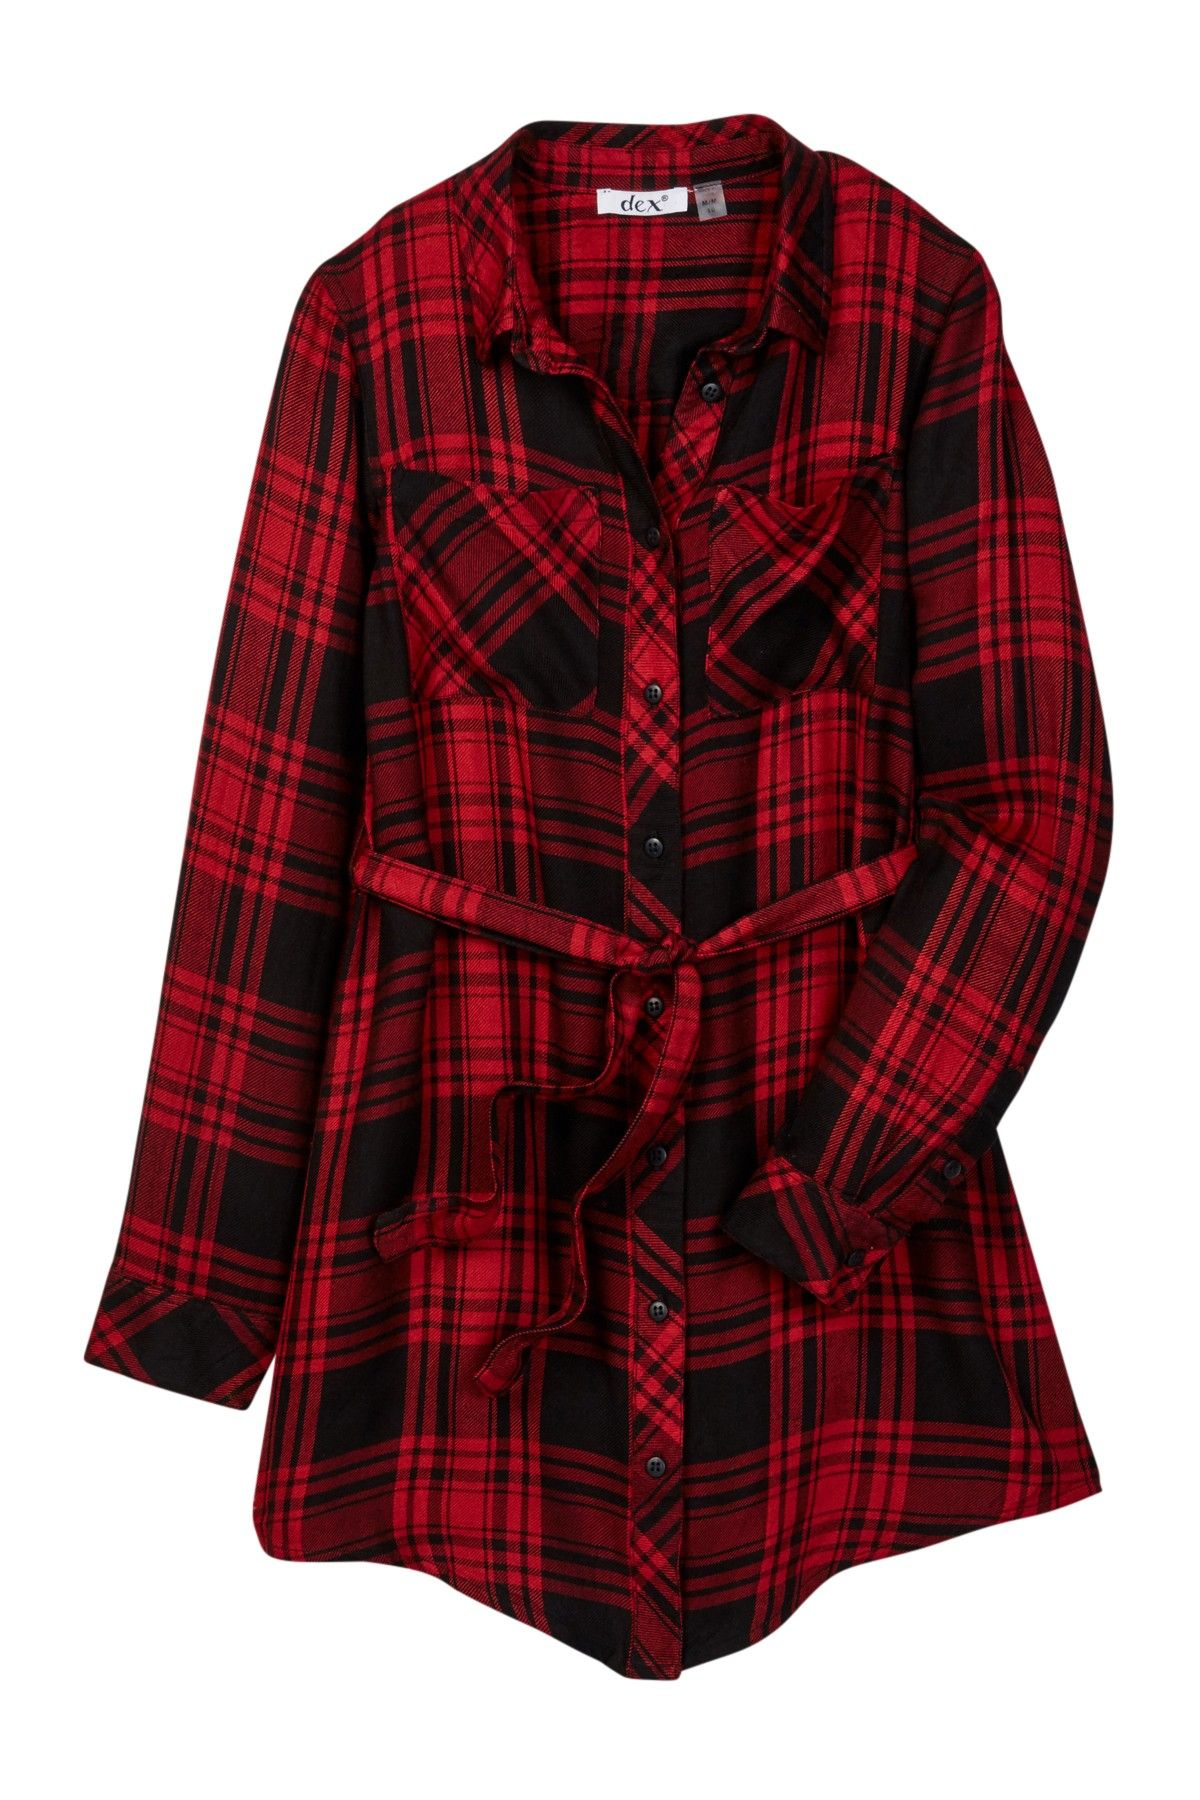 d43b60f08a9 Dex Belted Roll Sleeve Plaid Shirt Dress (Big Girls) Ajin